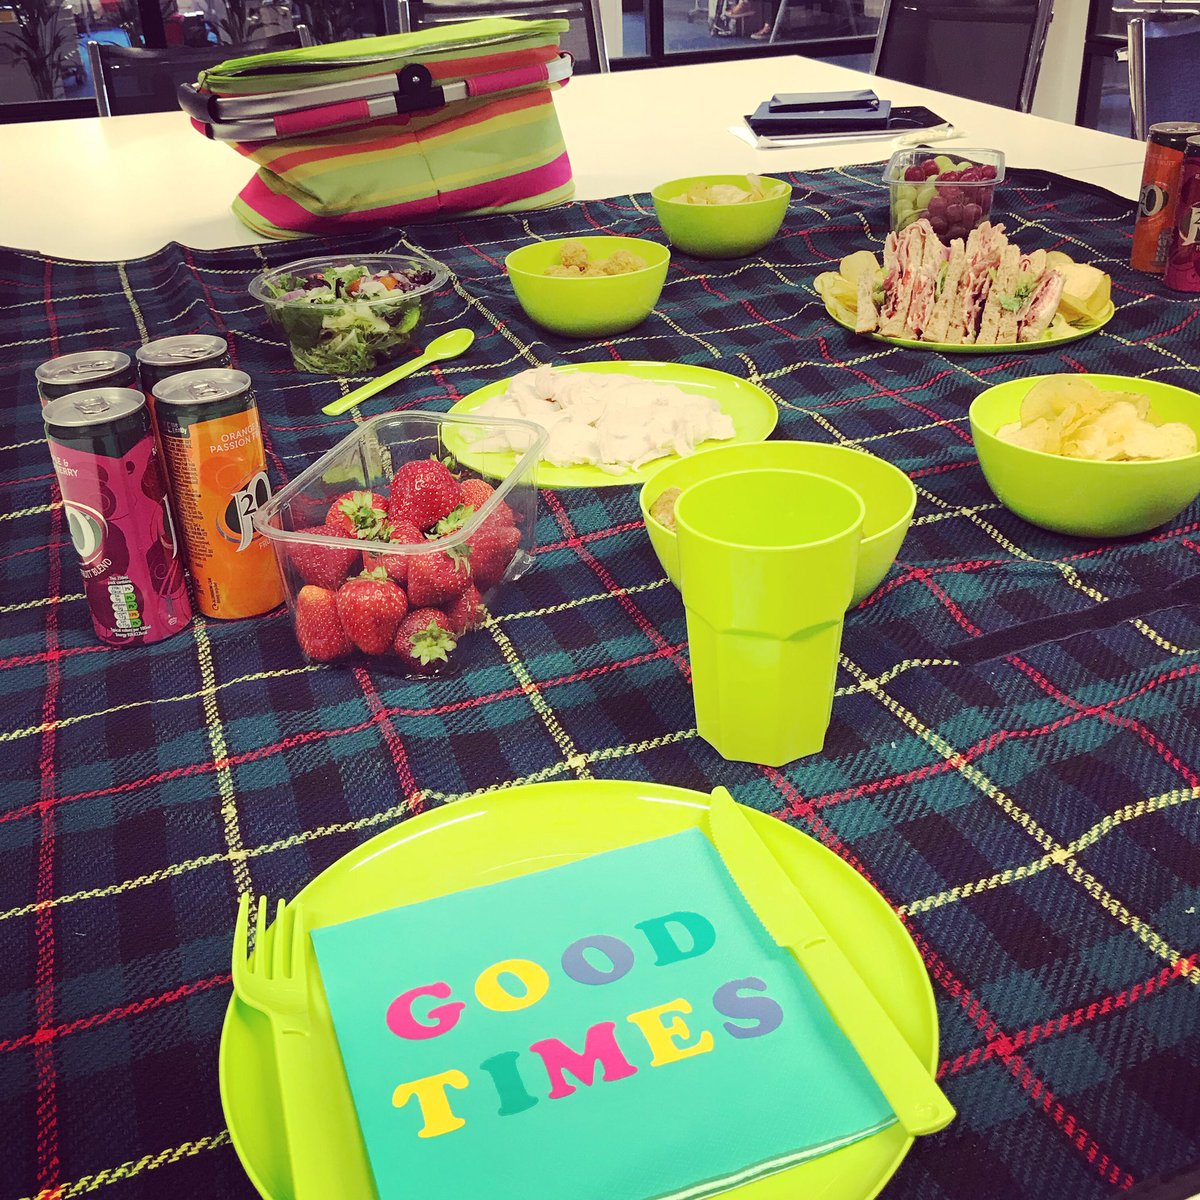 Lovely summer picnic for our lunch and learn today - thank you @CPGlasgow! #execspace #eventprofs <br>http://pic.twitter.com/WIocsKJ3JZ